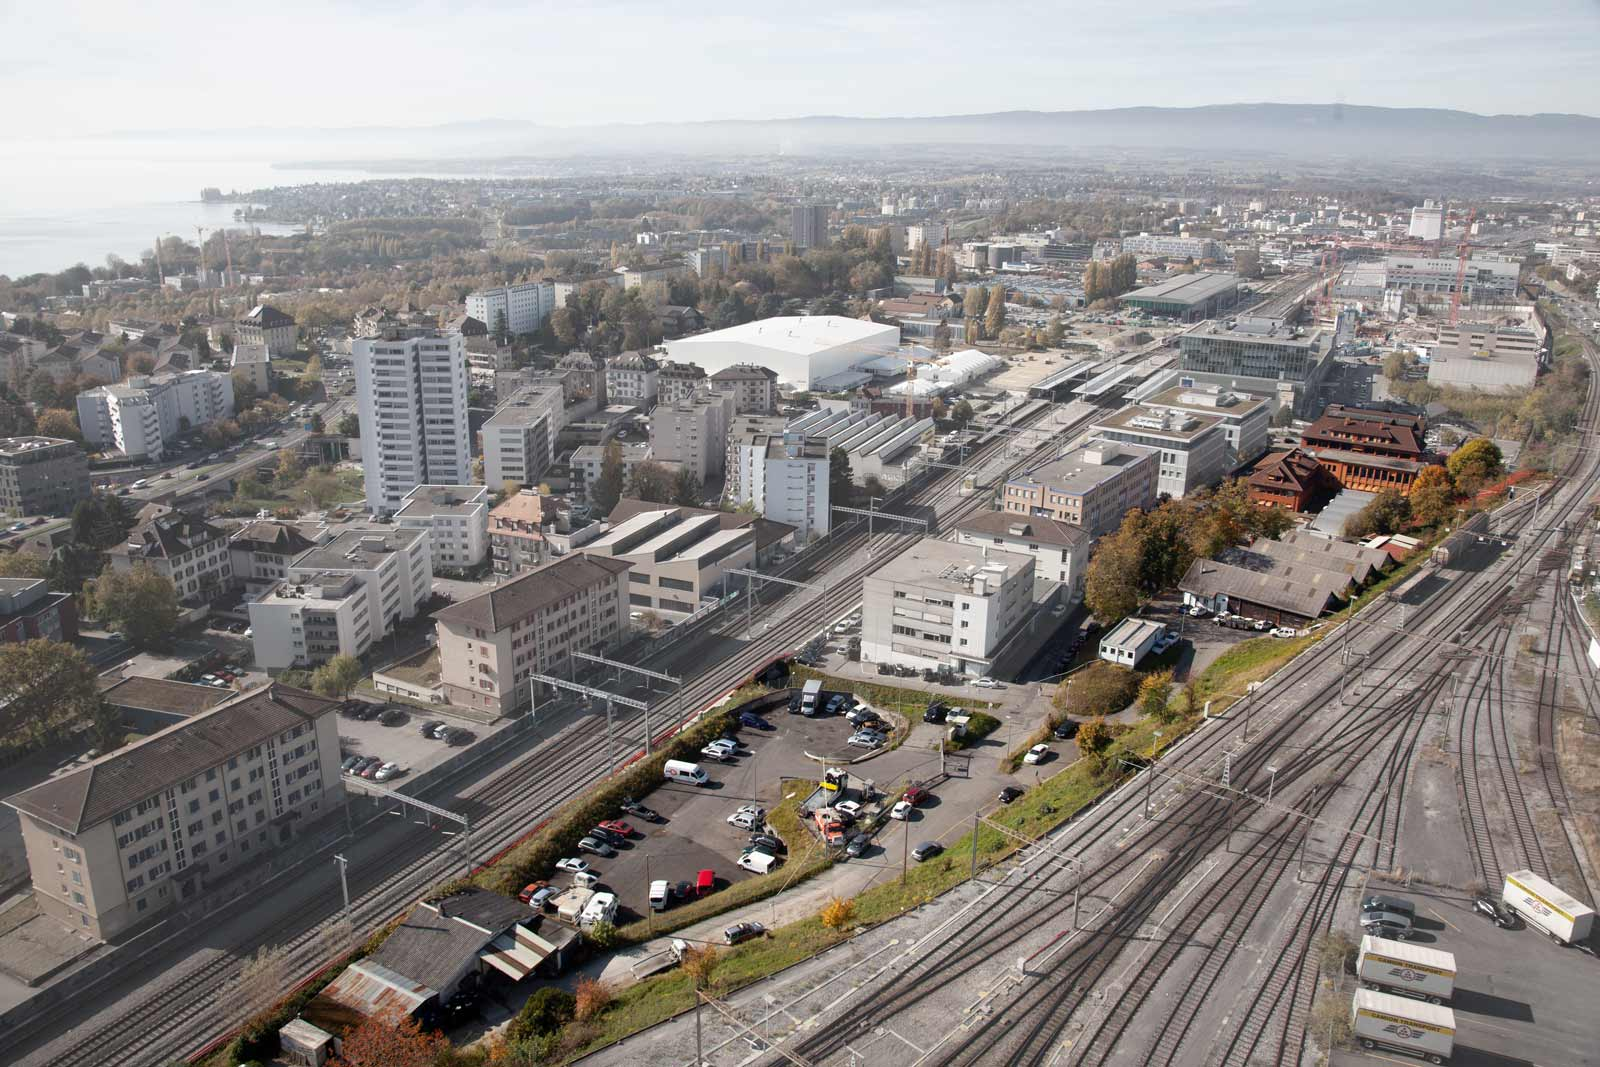 BETA shortlisted for an urban study in Lausanne, Switzerland